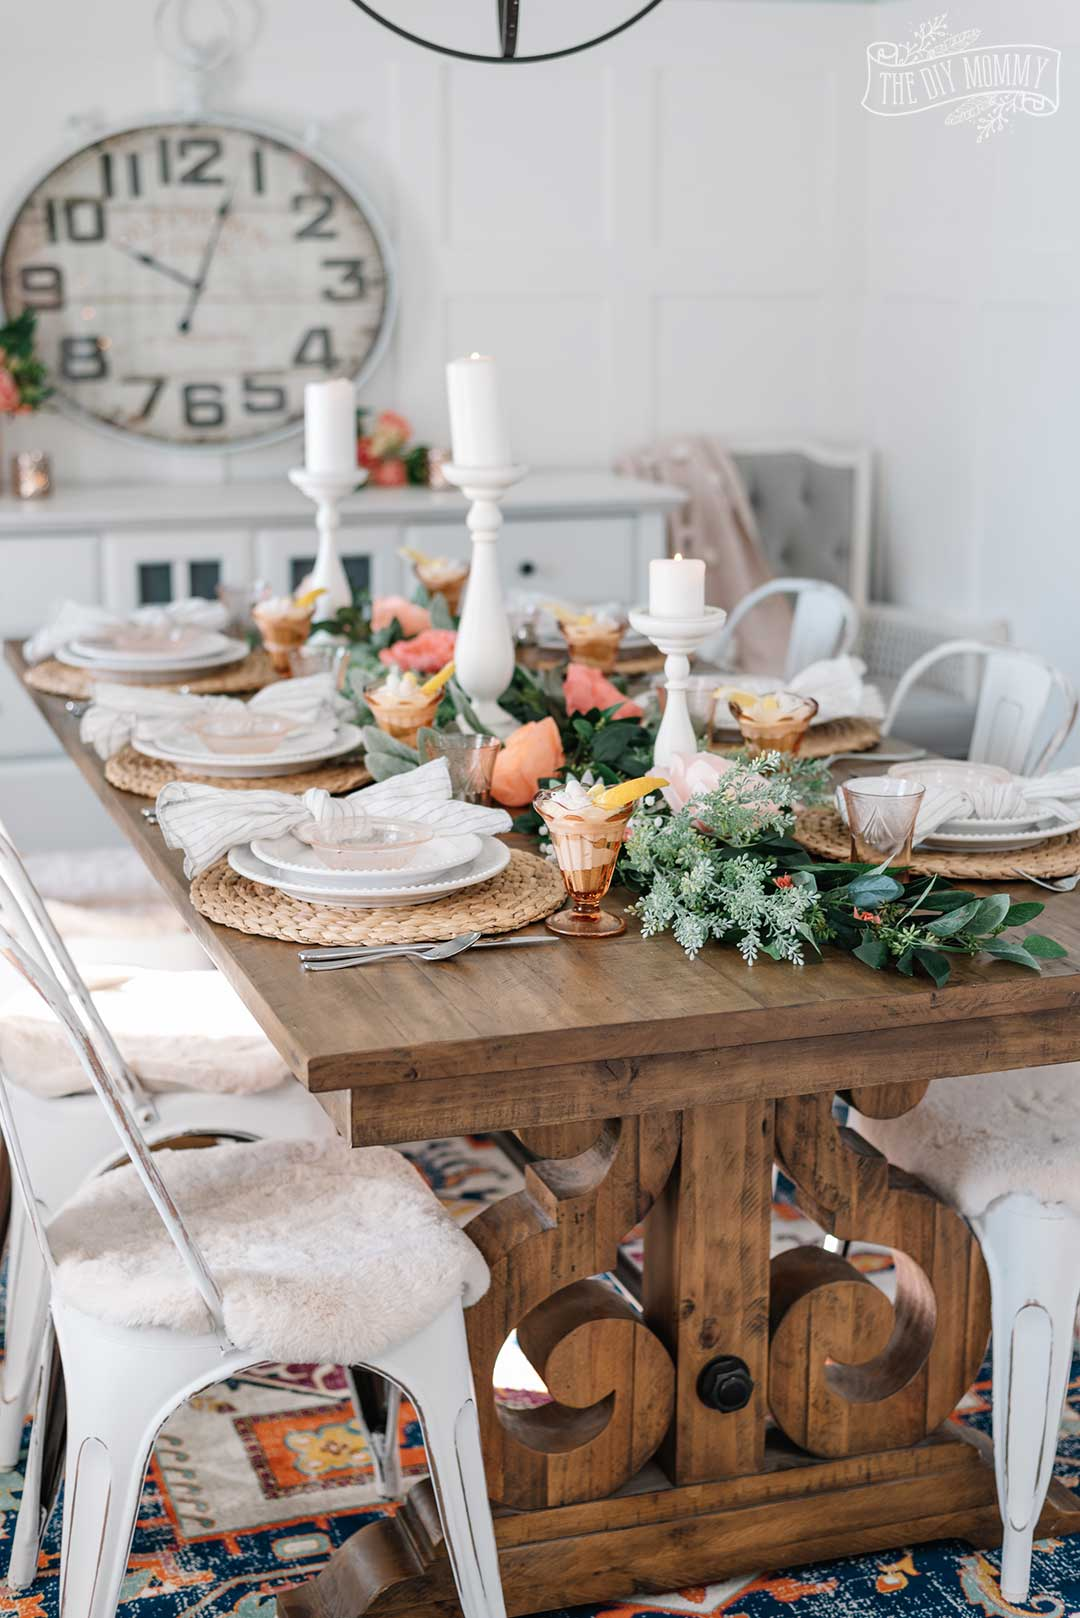 Vintage Inspired Spring Tablescape Idea In Warm Pinks Yellows The Diy Mommy